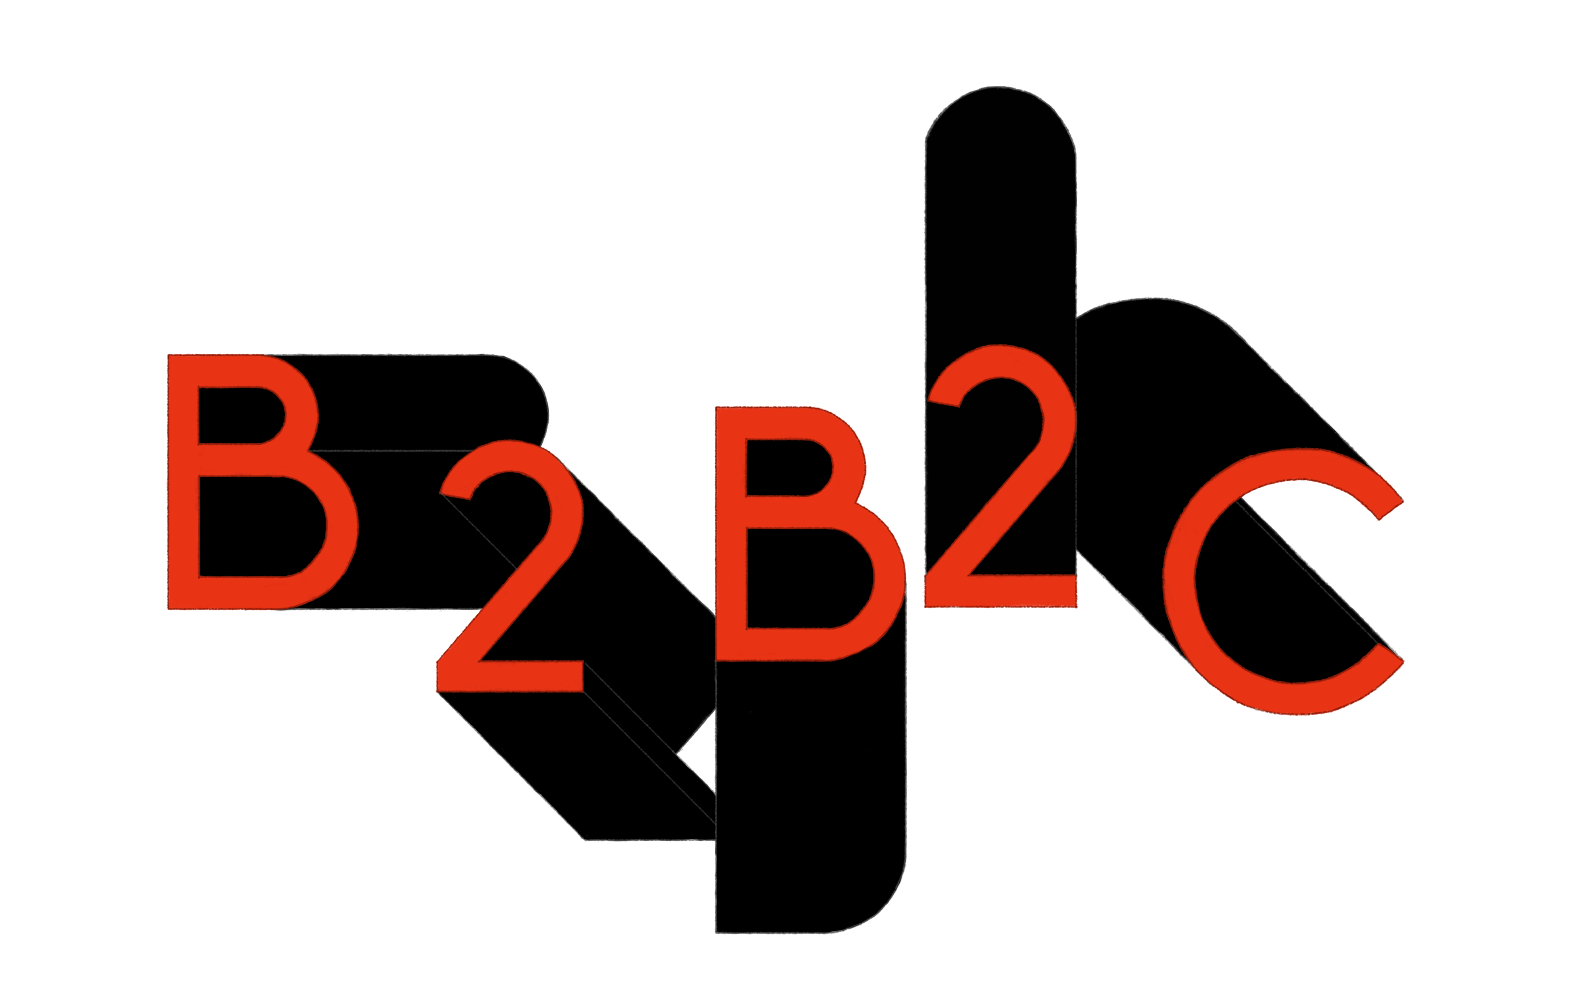 Image of Business to business to consumer acronym (B2B2C)